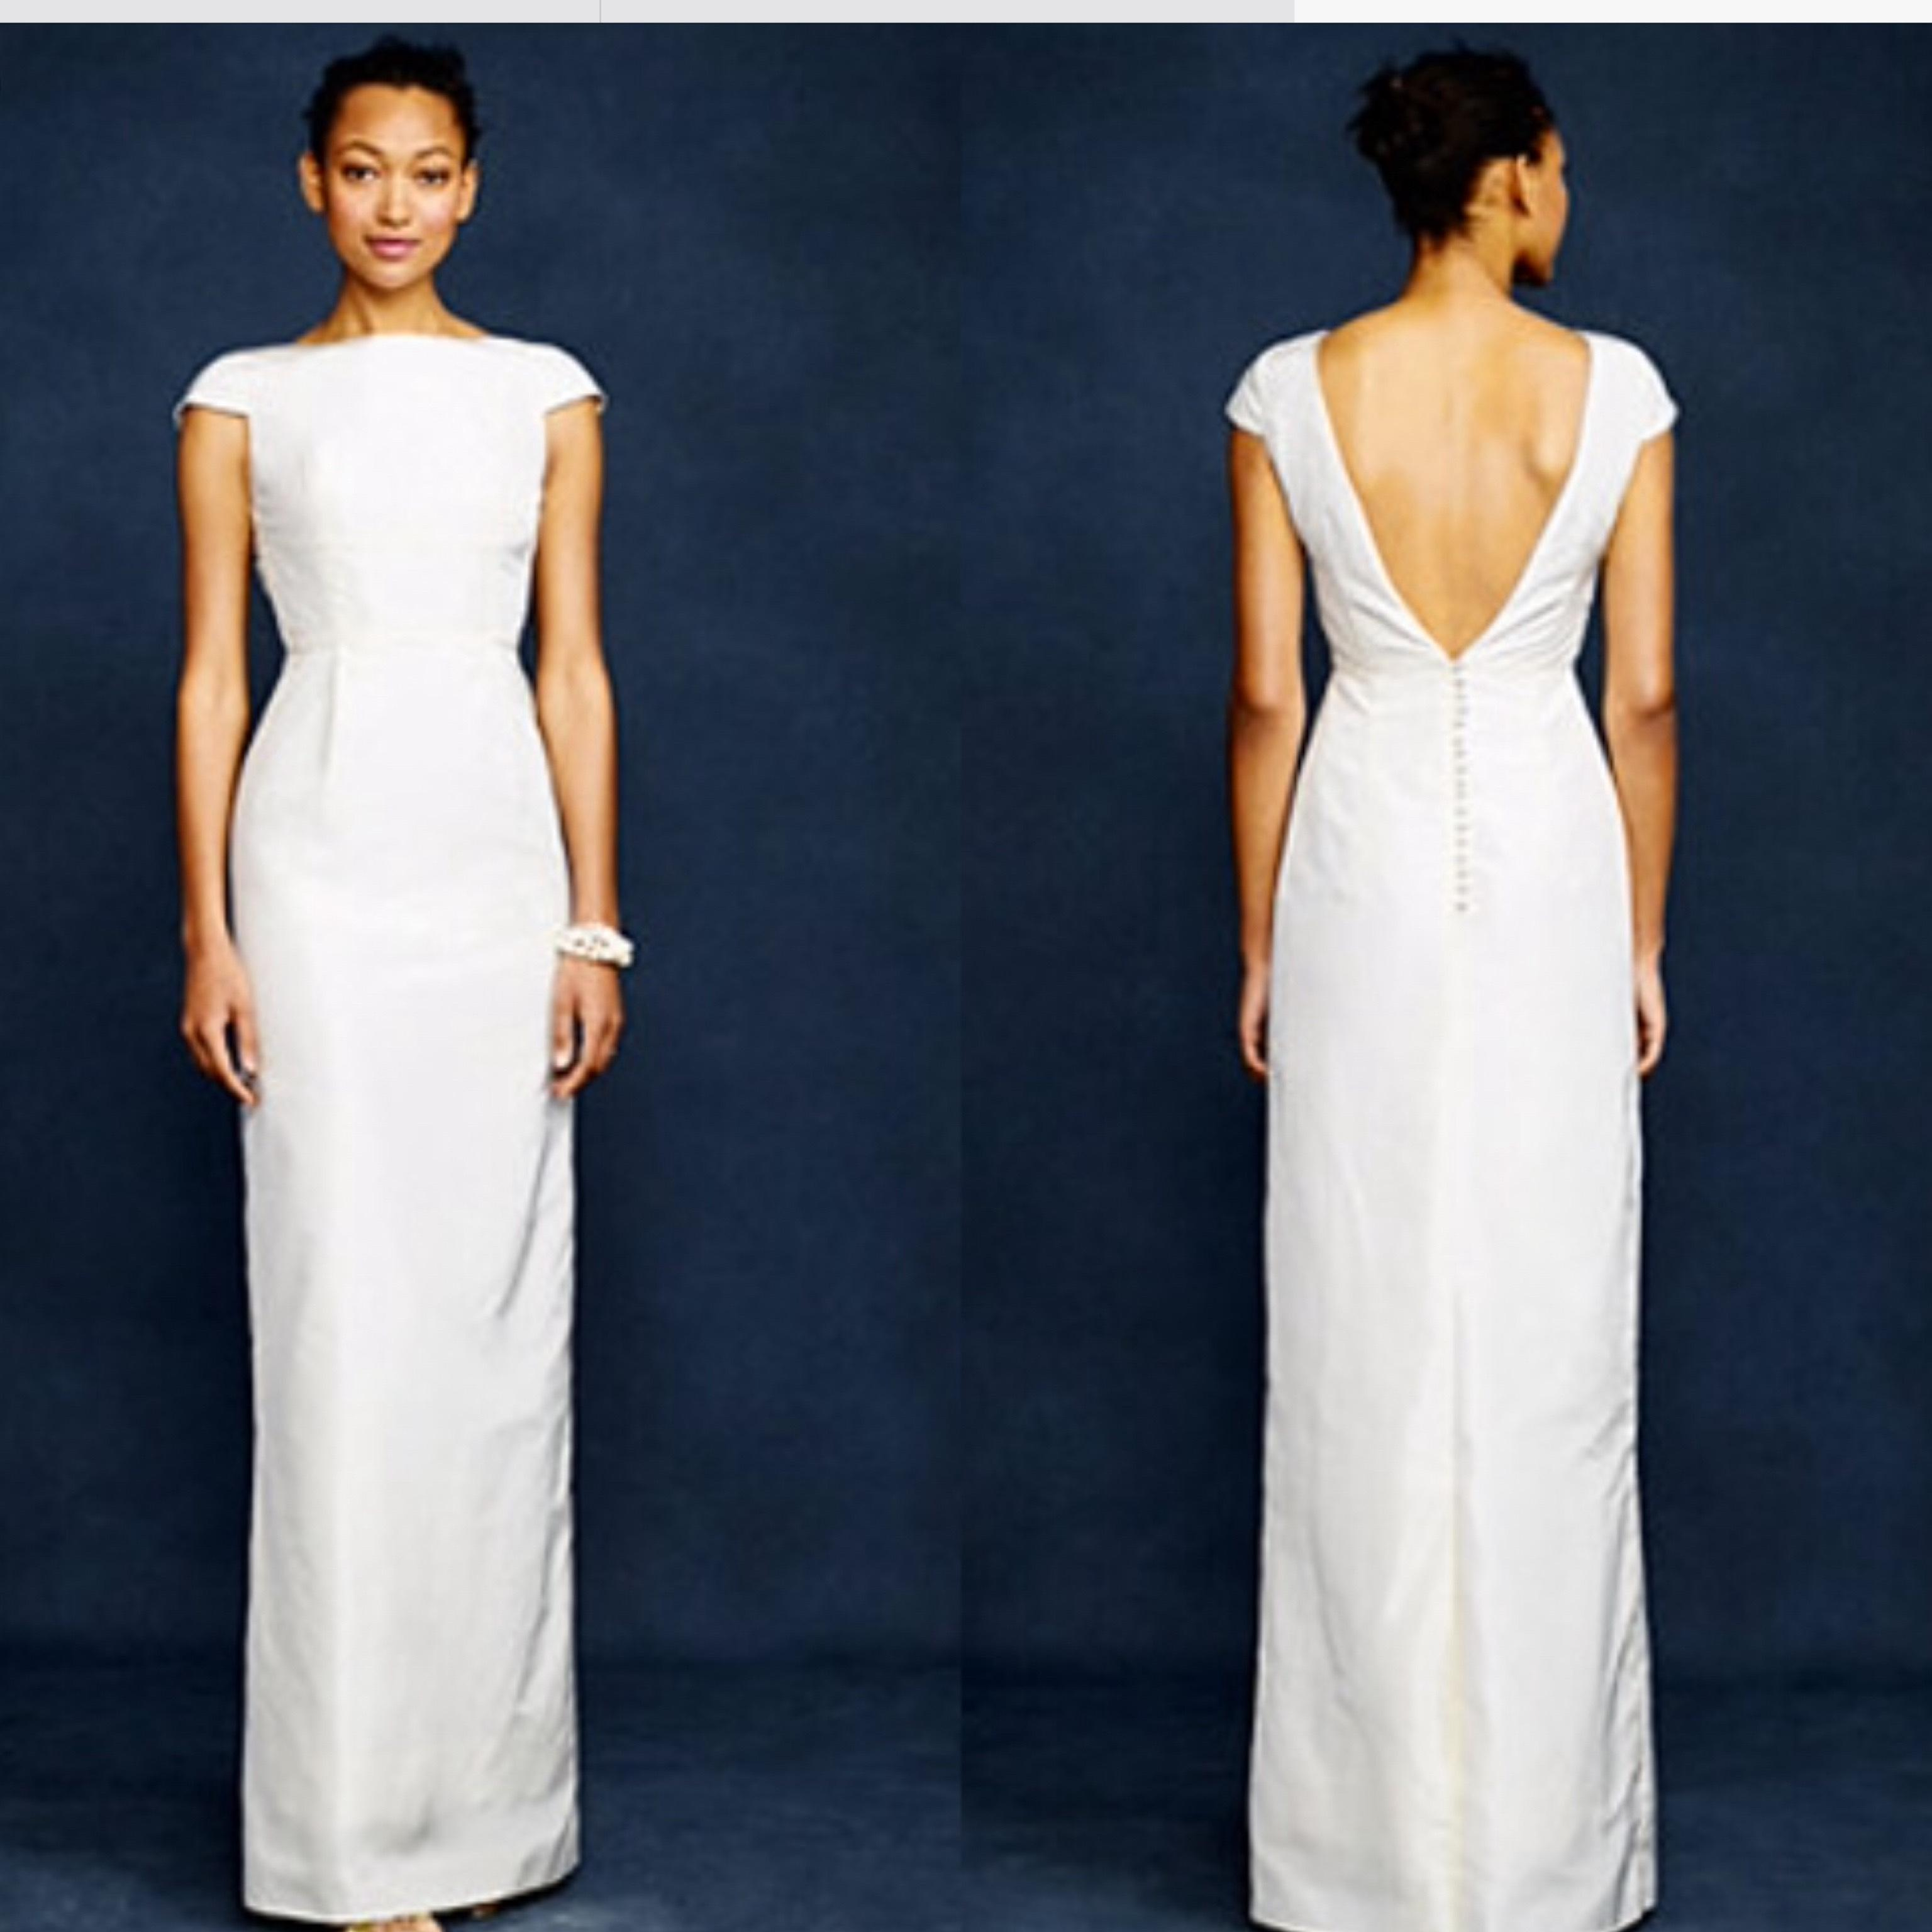 J.Crew Percy Wedding Gown | Dress images